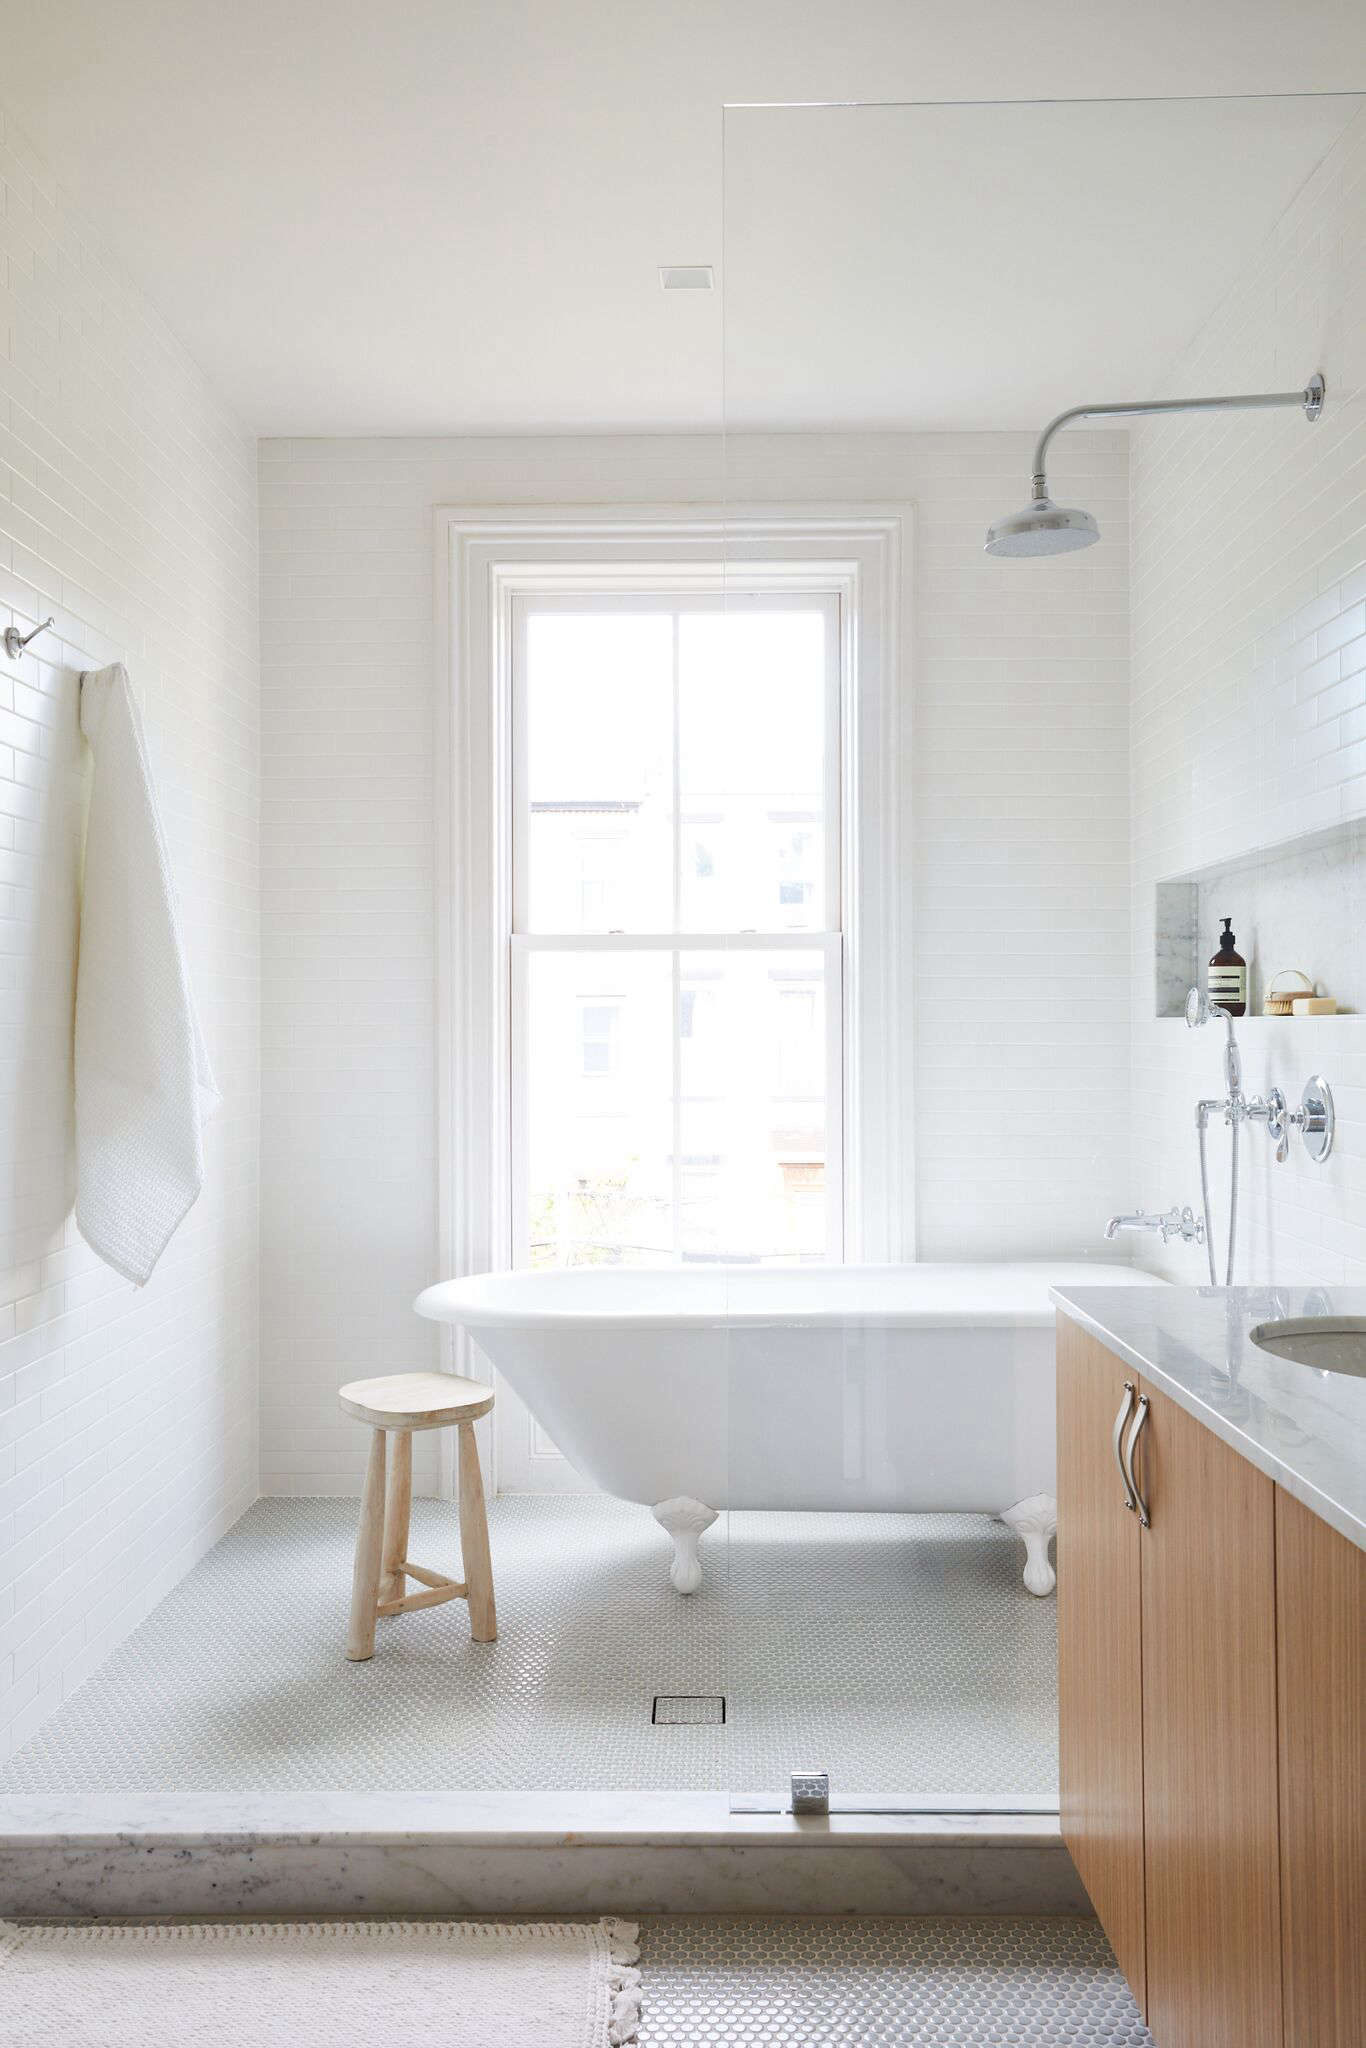 Archive Dive: 10 Tiled Bathrooms with Niched Shelves